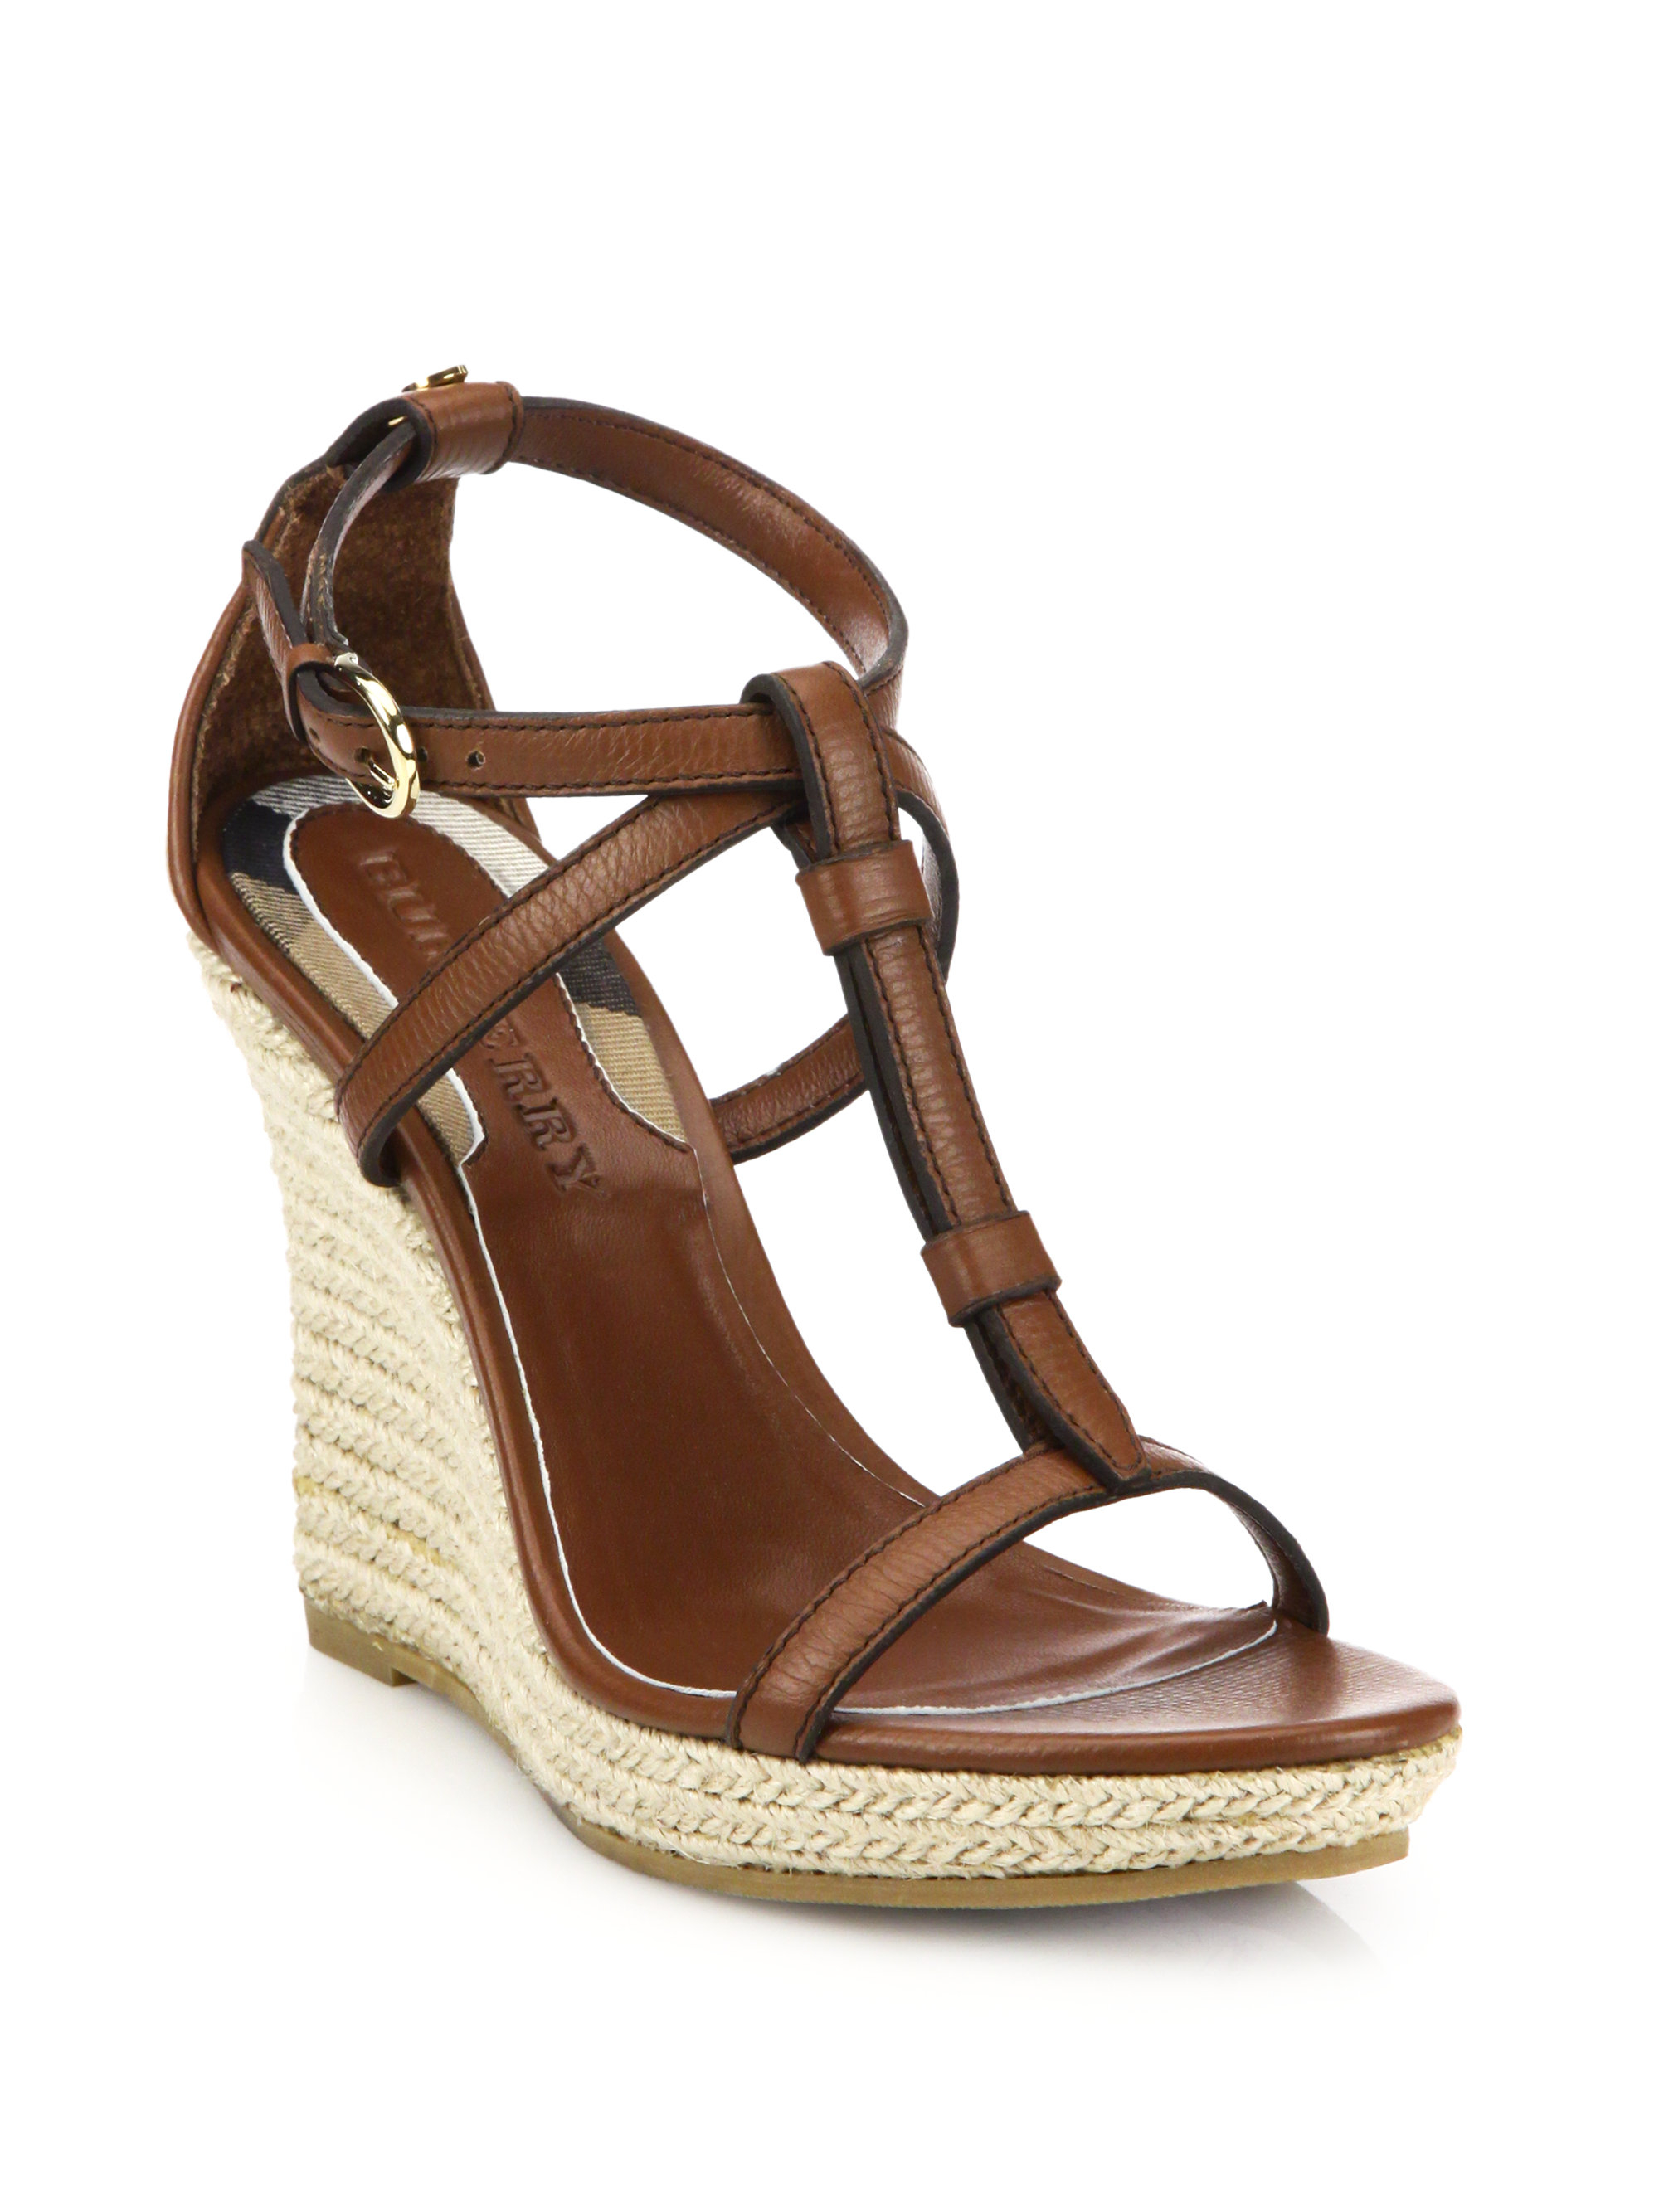 633f9460574 Lyst - Burberry Wedland Leather Wedge Espadrilles in Brown